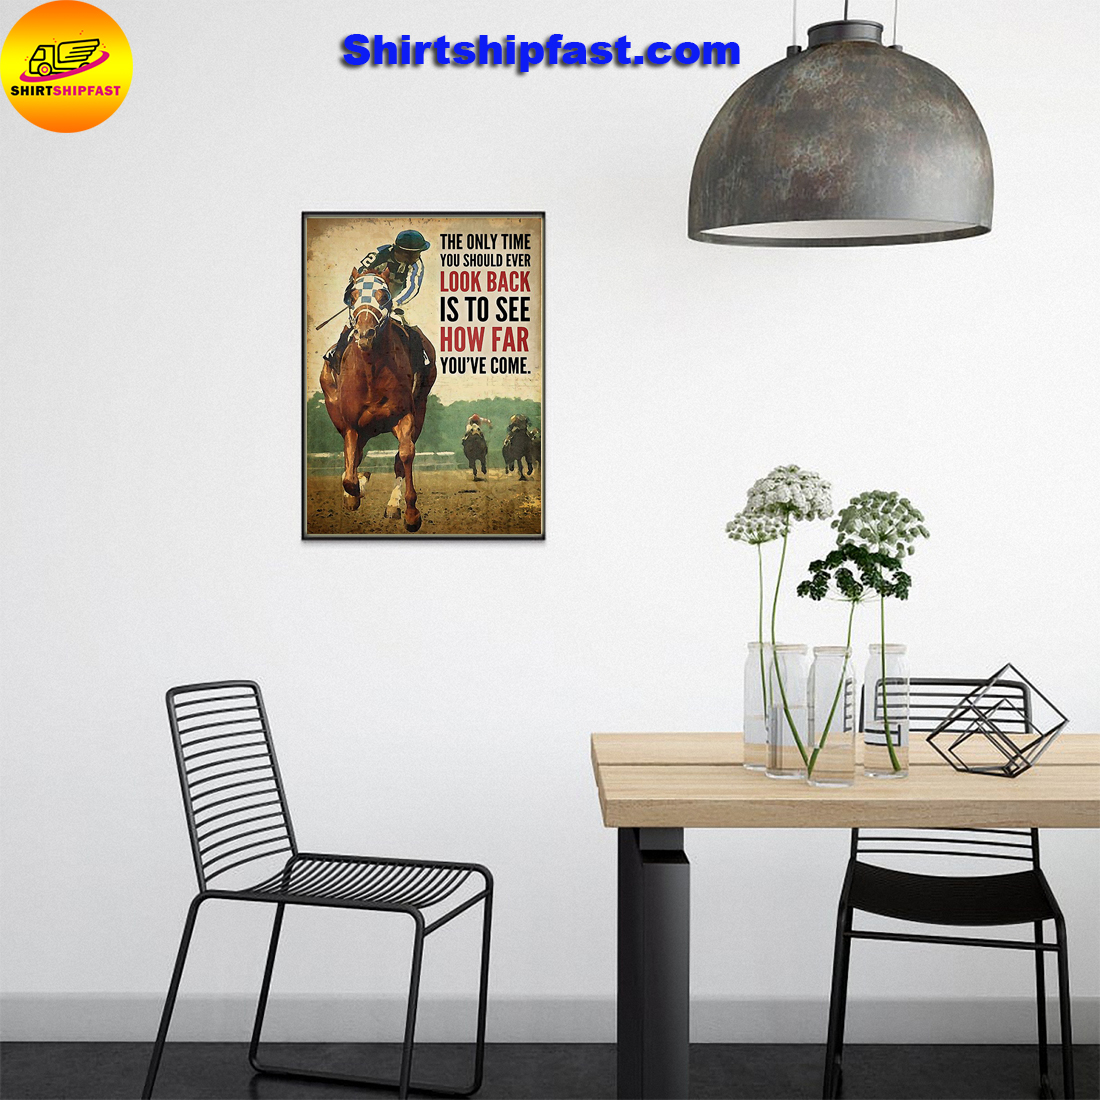 Secretariat horce racing The only time you should ever look back is to see how far you've come poster - Picture 1